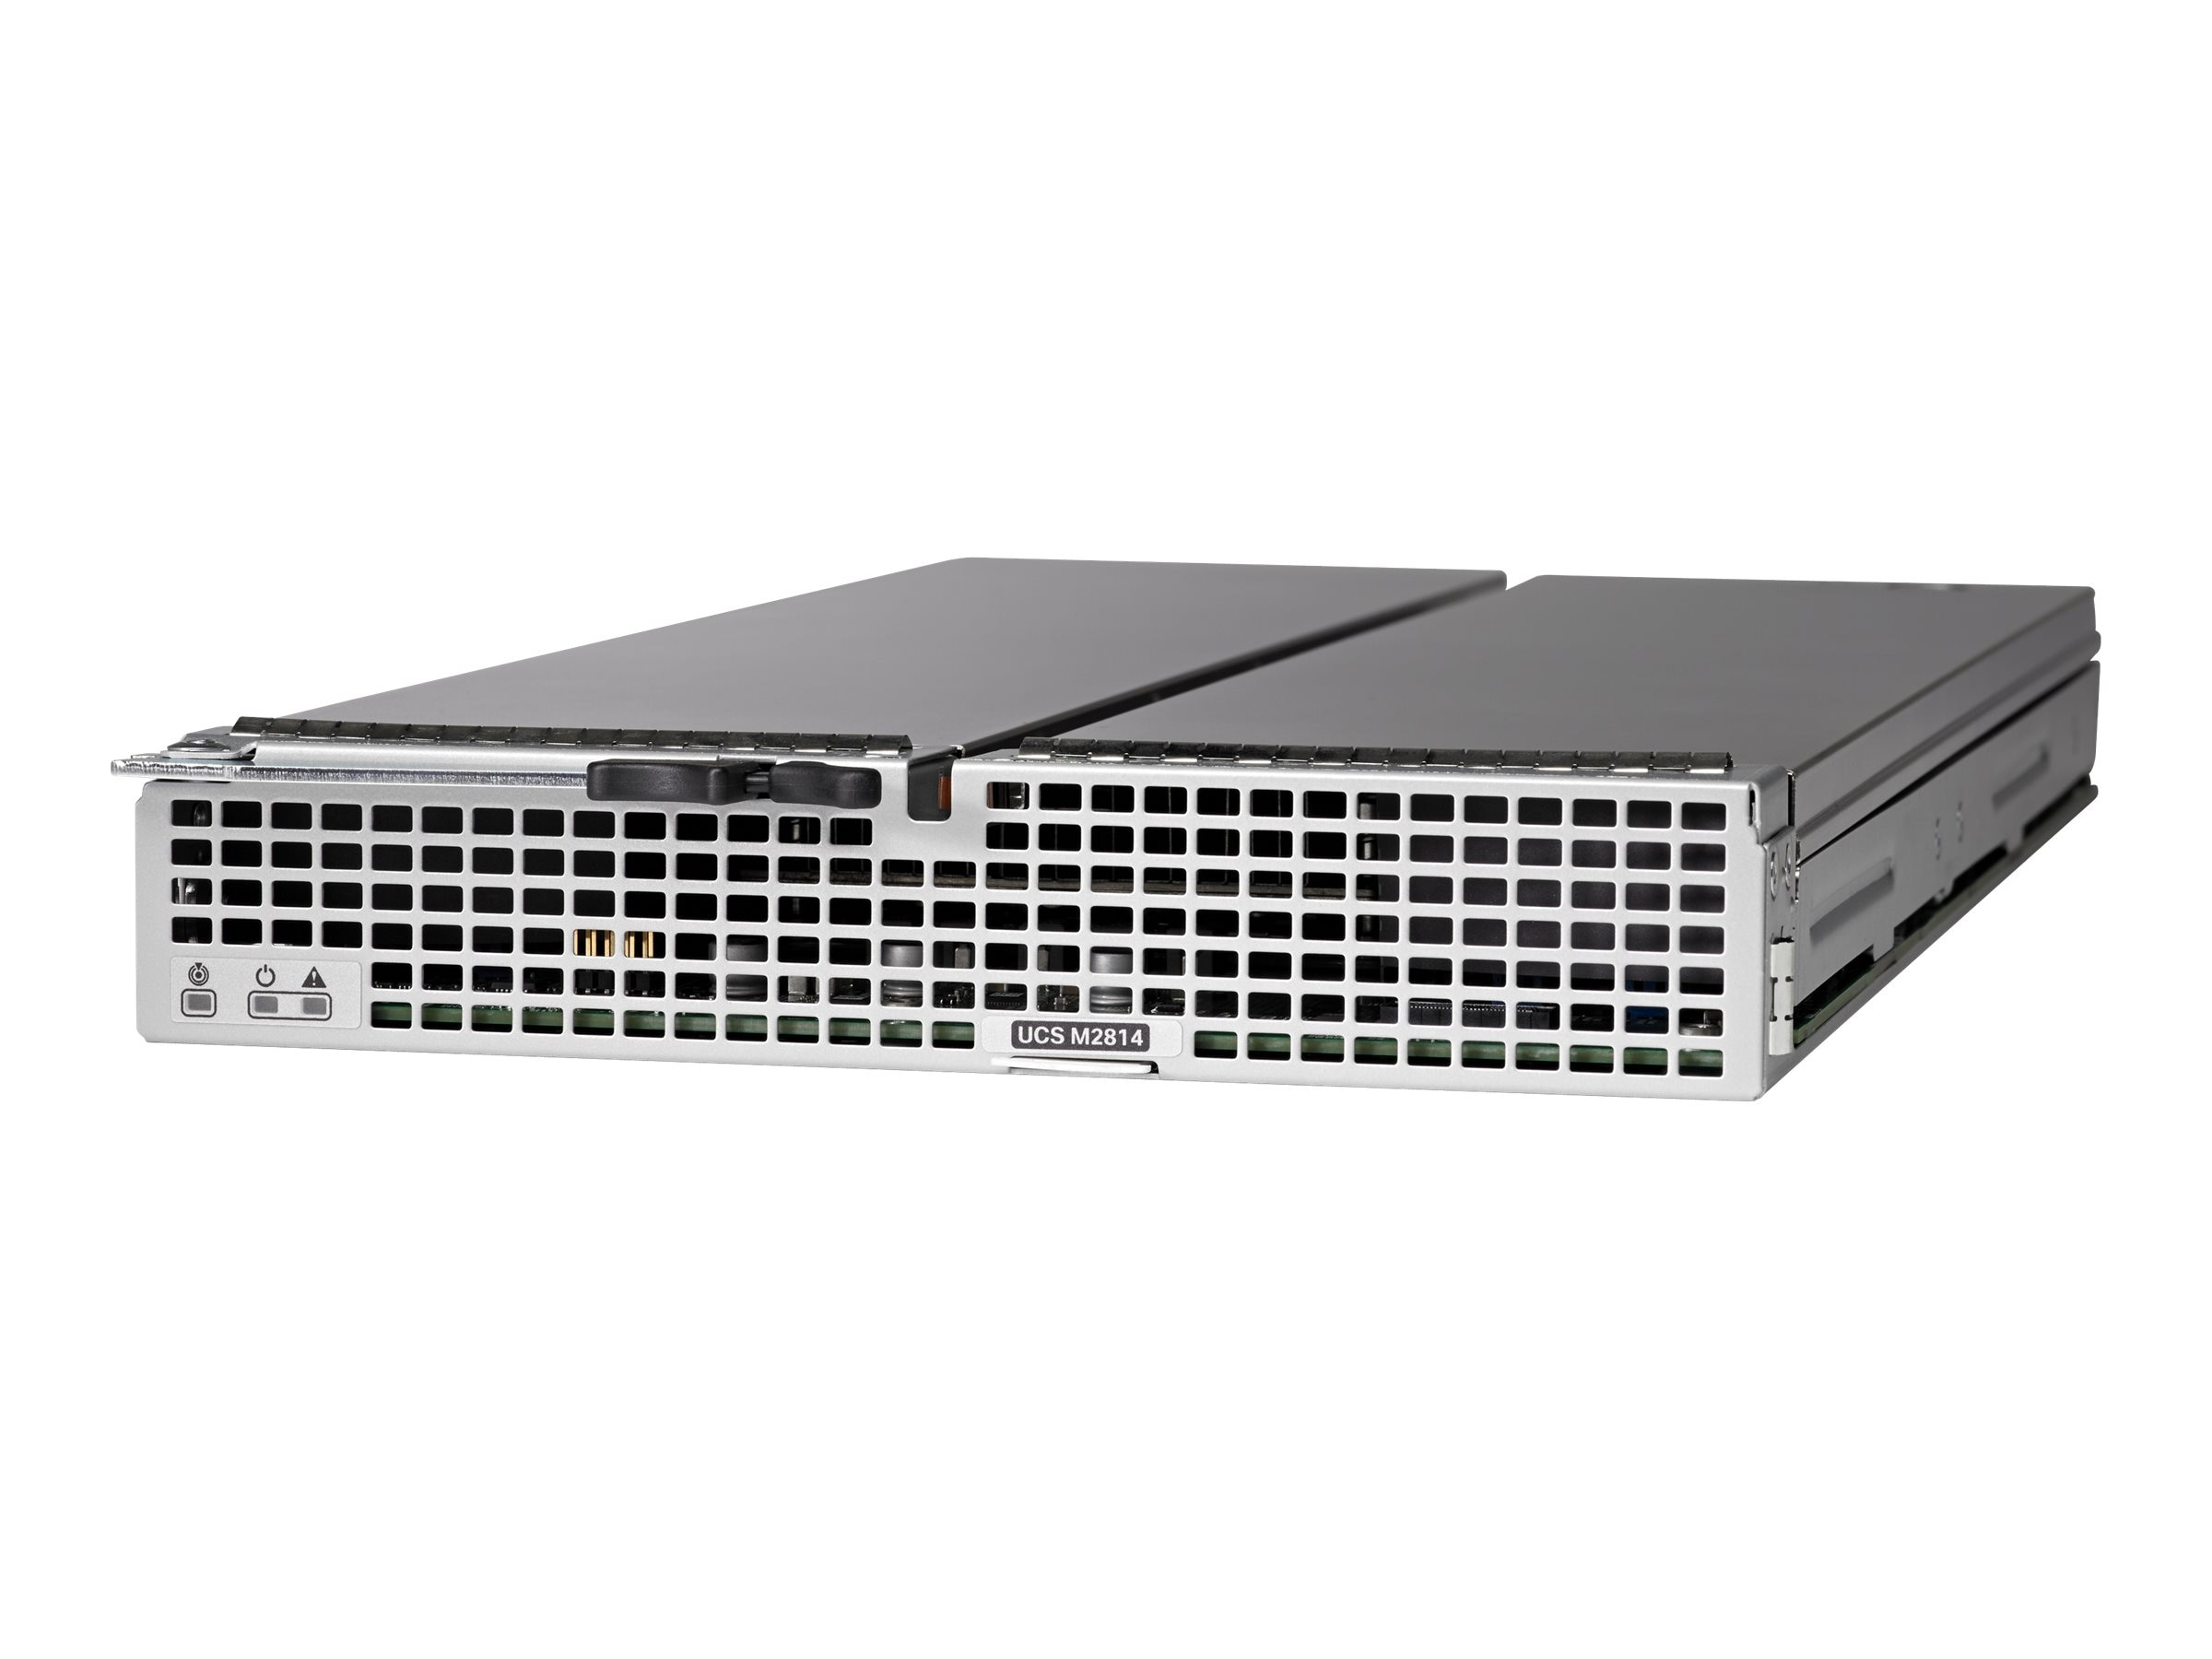 Cisco UCSME-2814-2680 Image 1